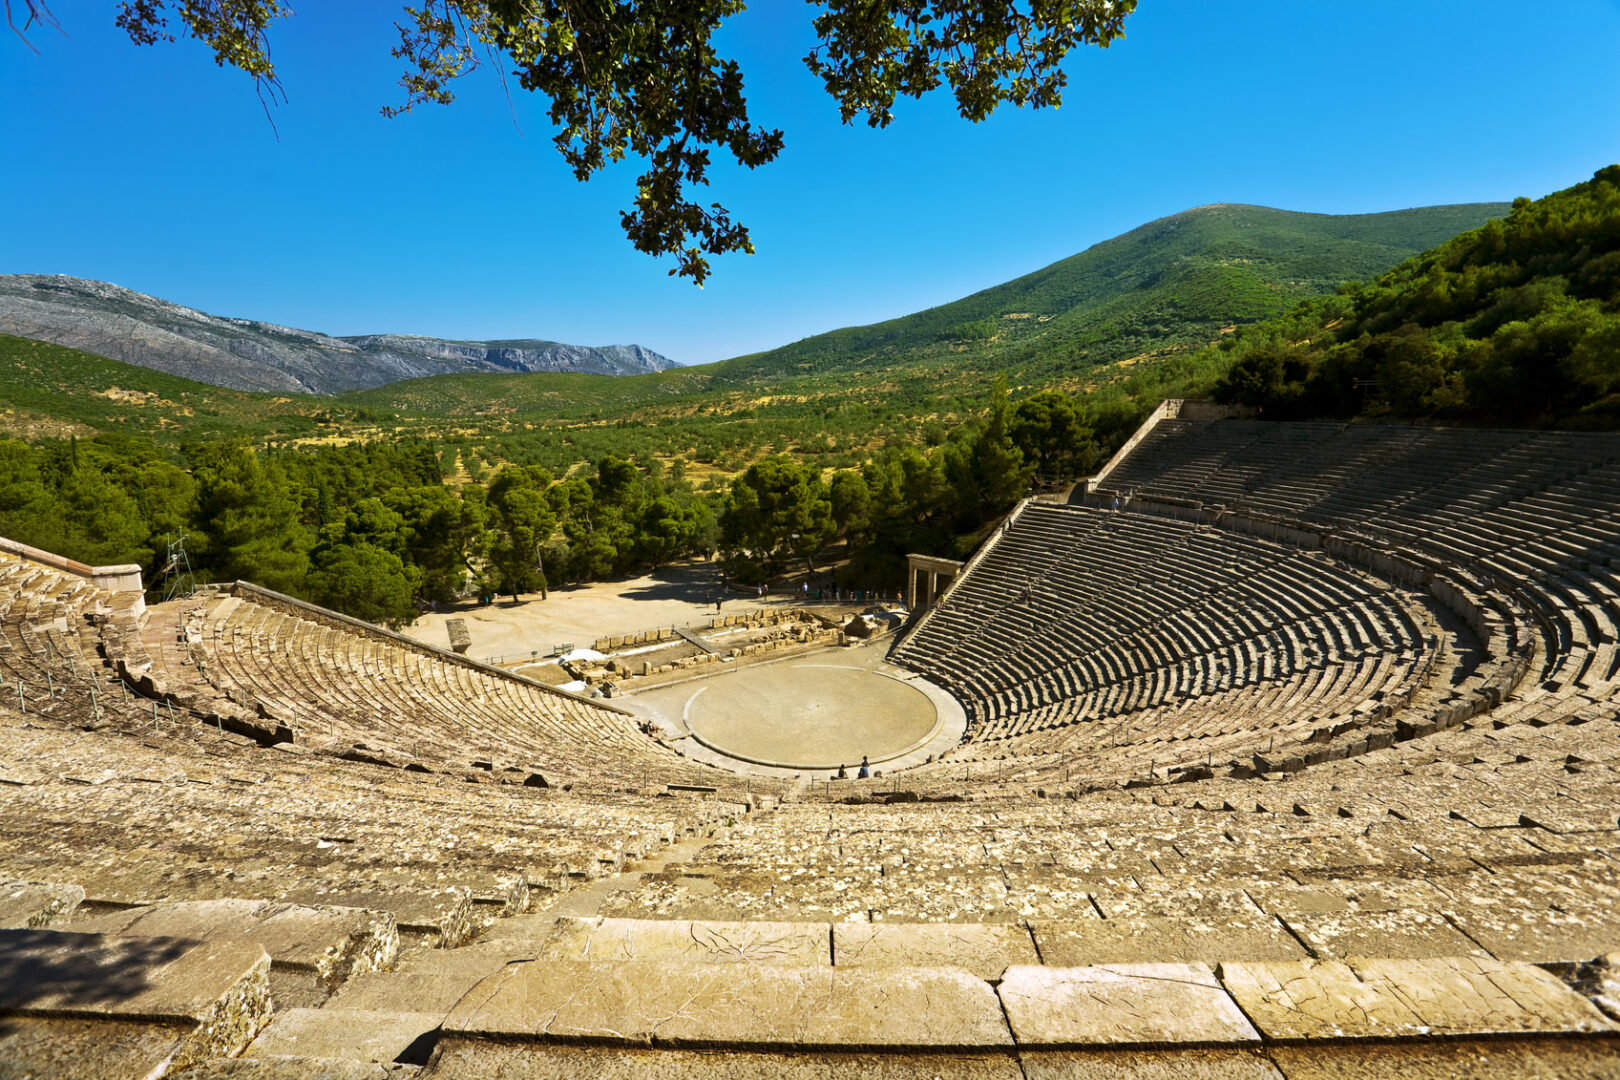 Epidaurus theatres come alive with the works of great Greek playwrights such as Aeschylus, Euripides, Sophocles and more